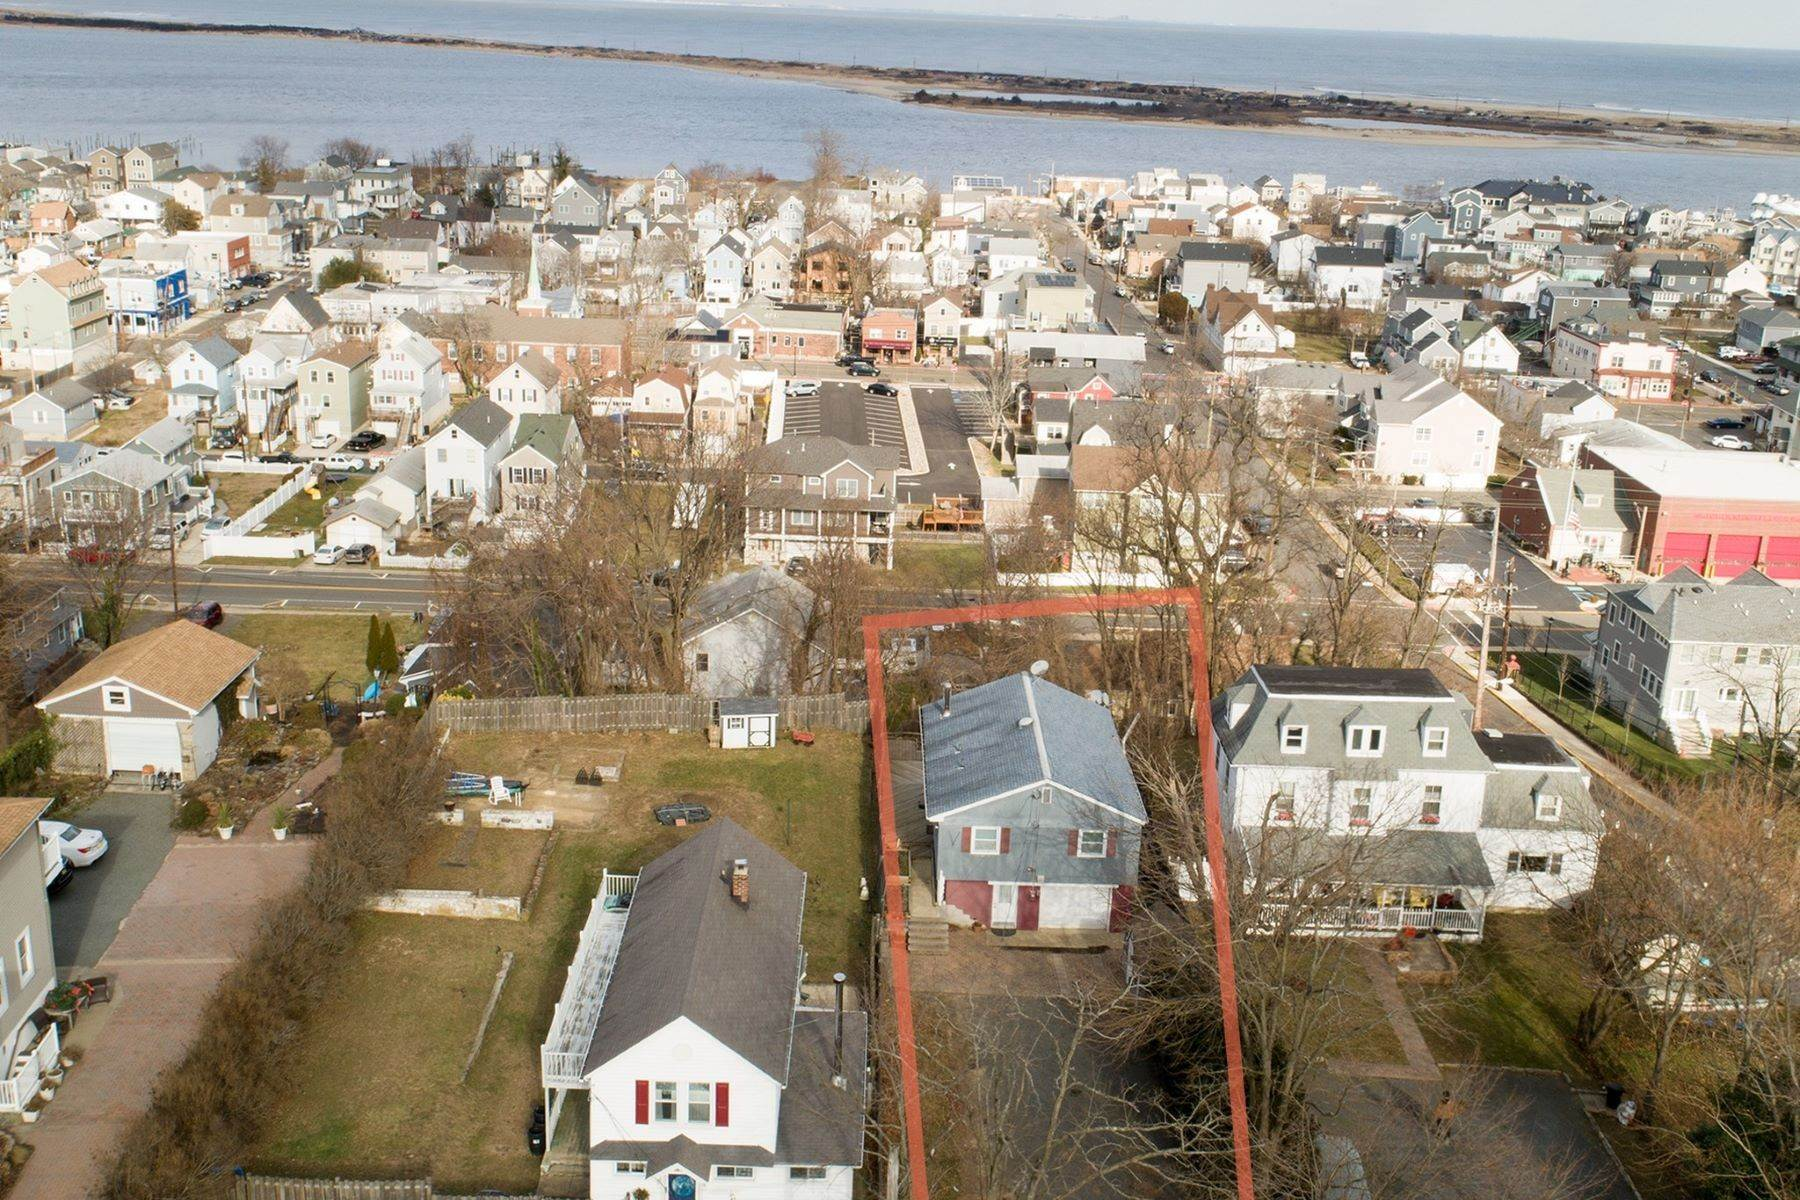 Single Family Homes for Sale at Shore Property Atop the Hills of the Highlands 156 Navesink Ave Highlands, New Jersey 07732 United States